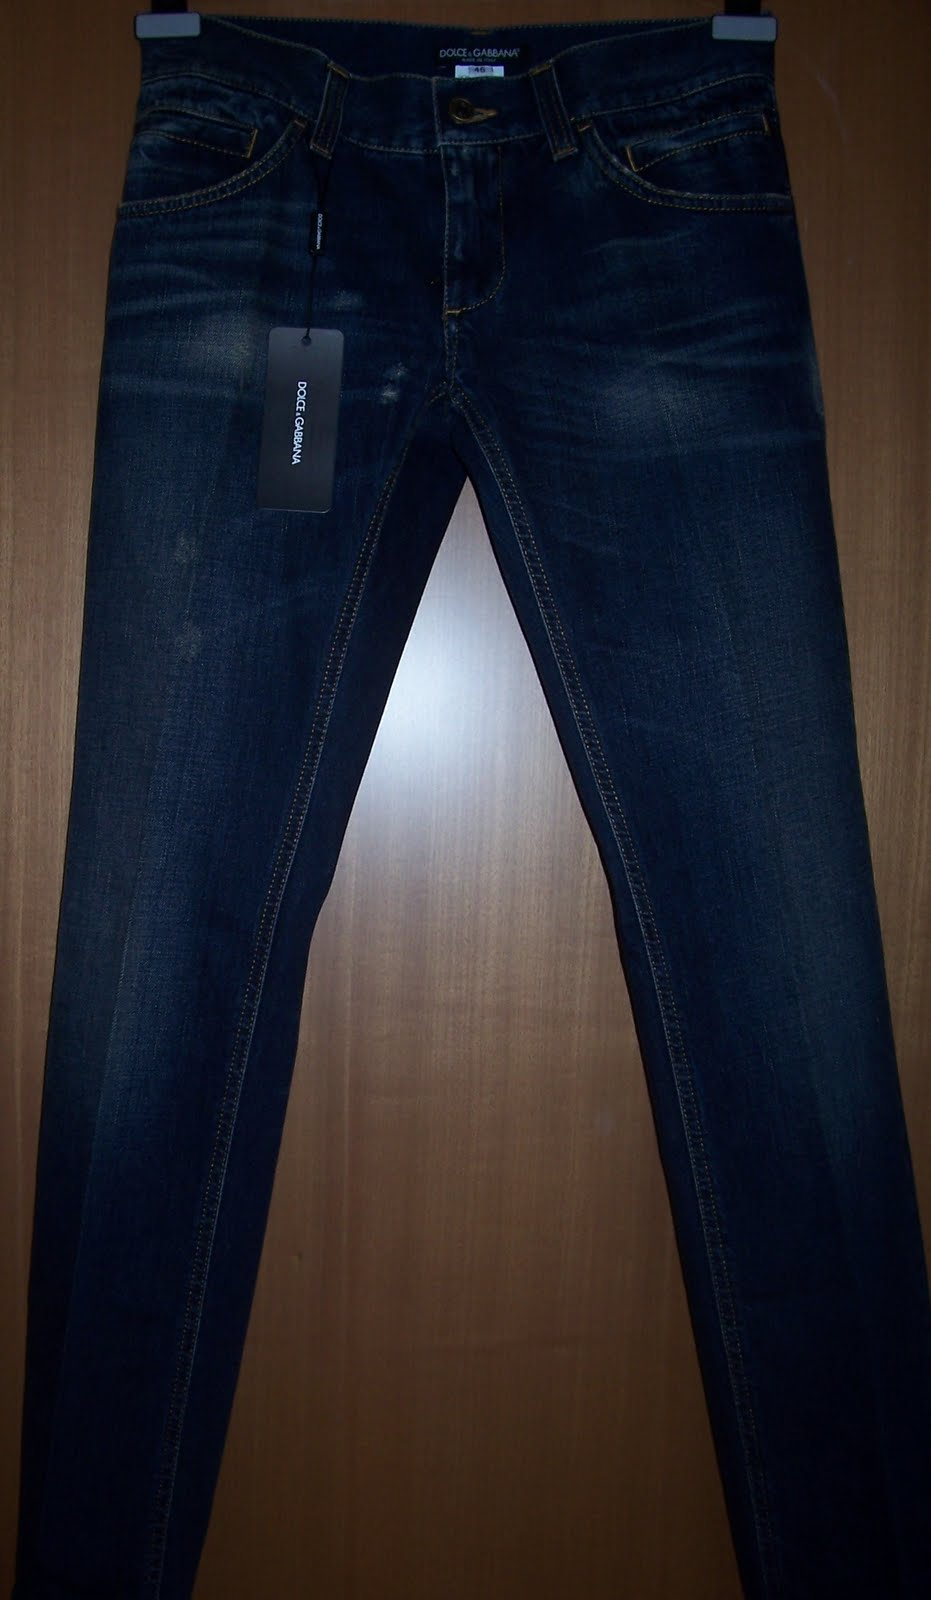 My Jeans Collection  Dg 14 Gold Dark Blue Jeans New Collection